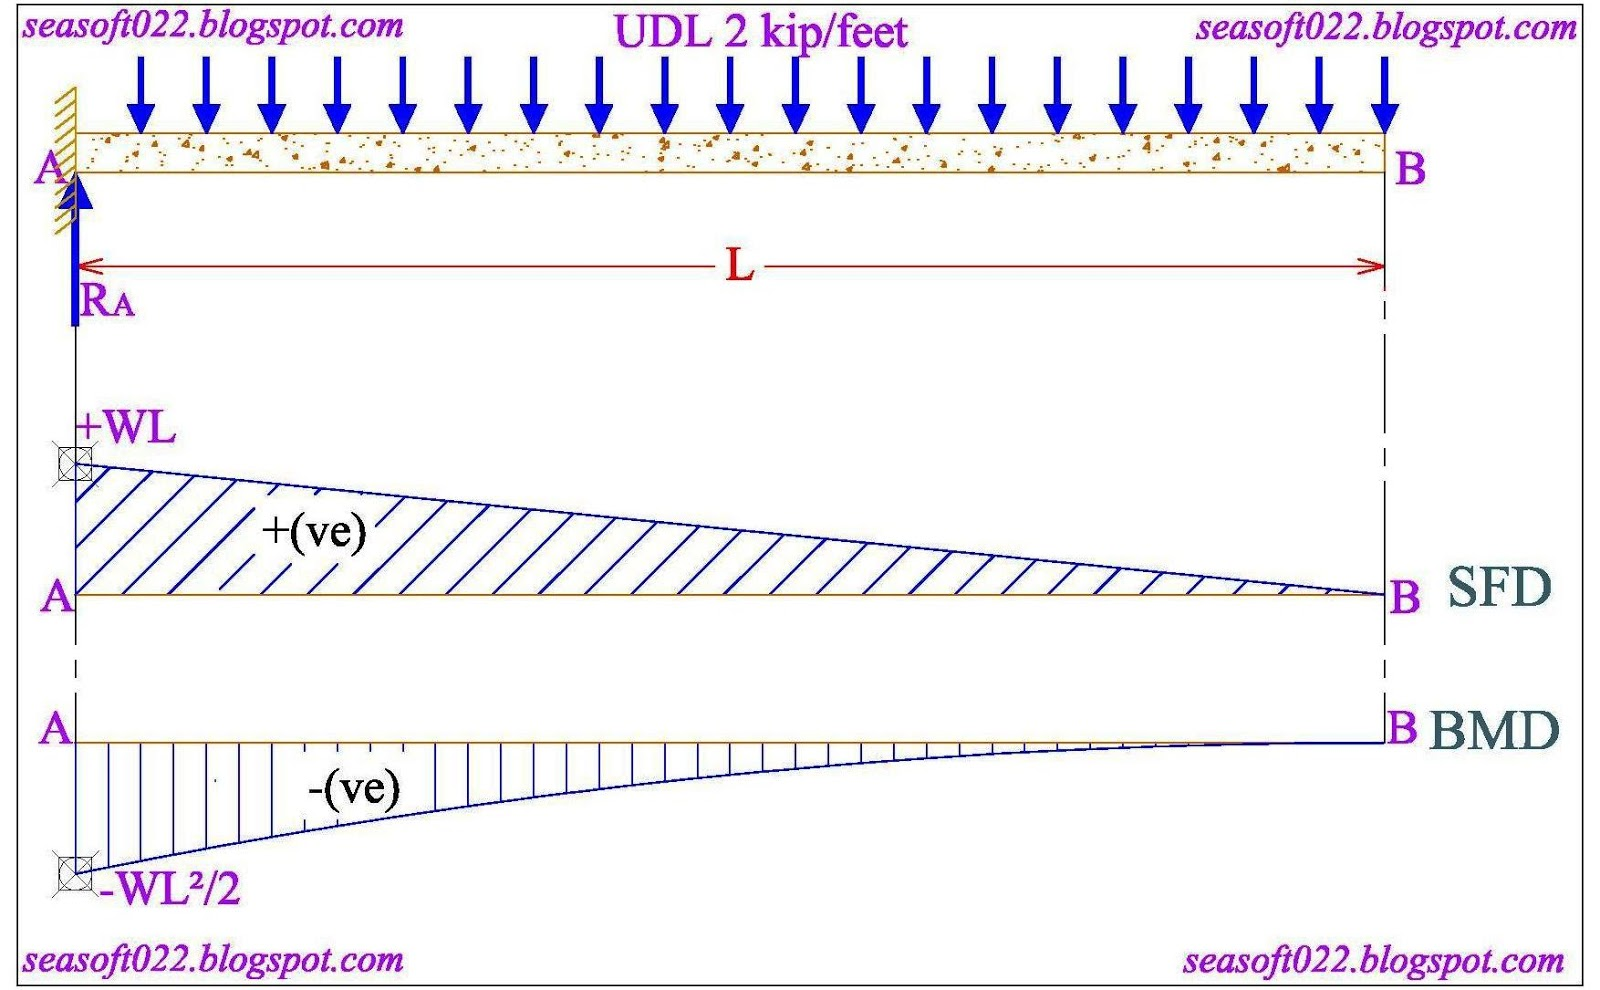 Sea Soft And Design Consultants Shear Force Bending Moment Beam Formulas With Diagrams F Ab Is A Of Length L Point The Fixed Support Udl Load W Acts Over Total